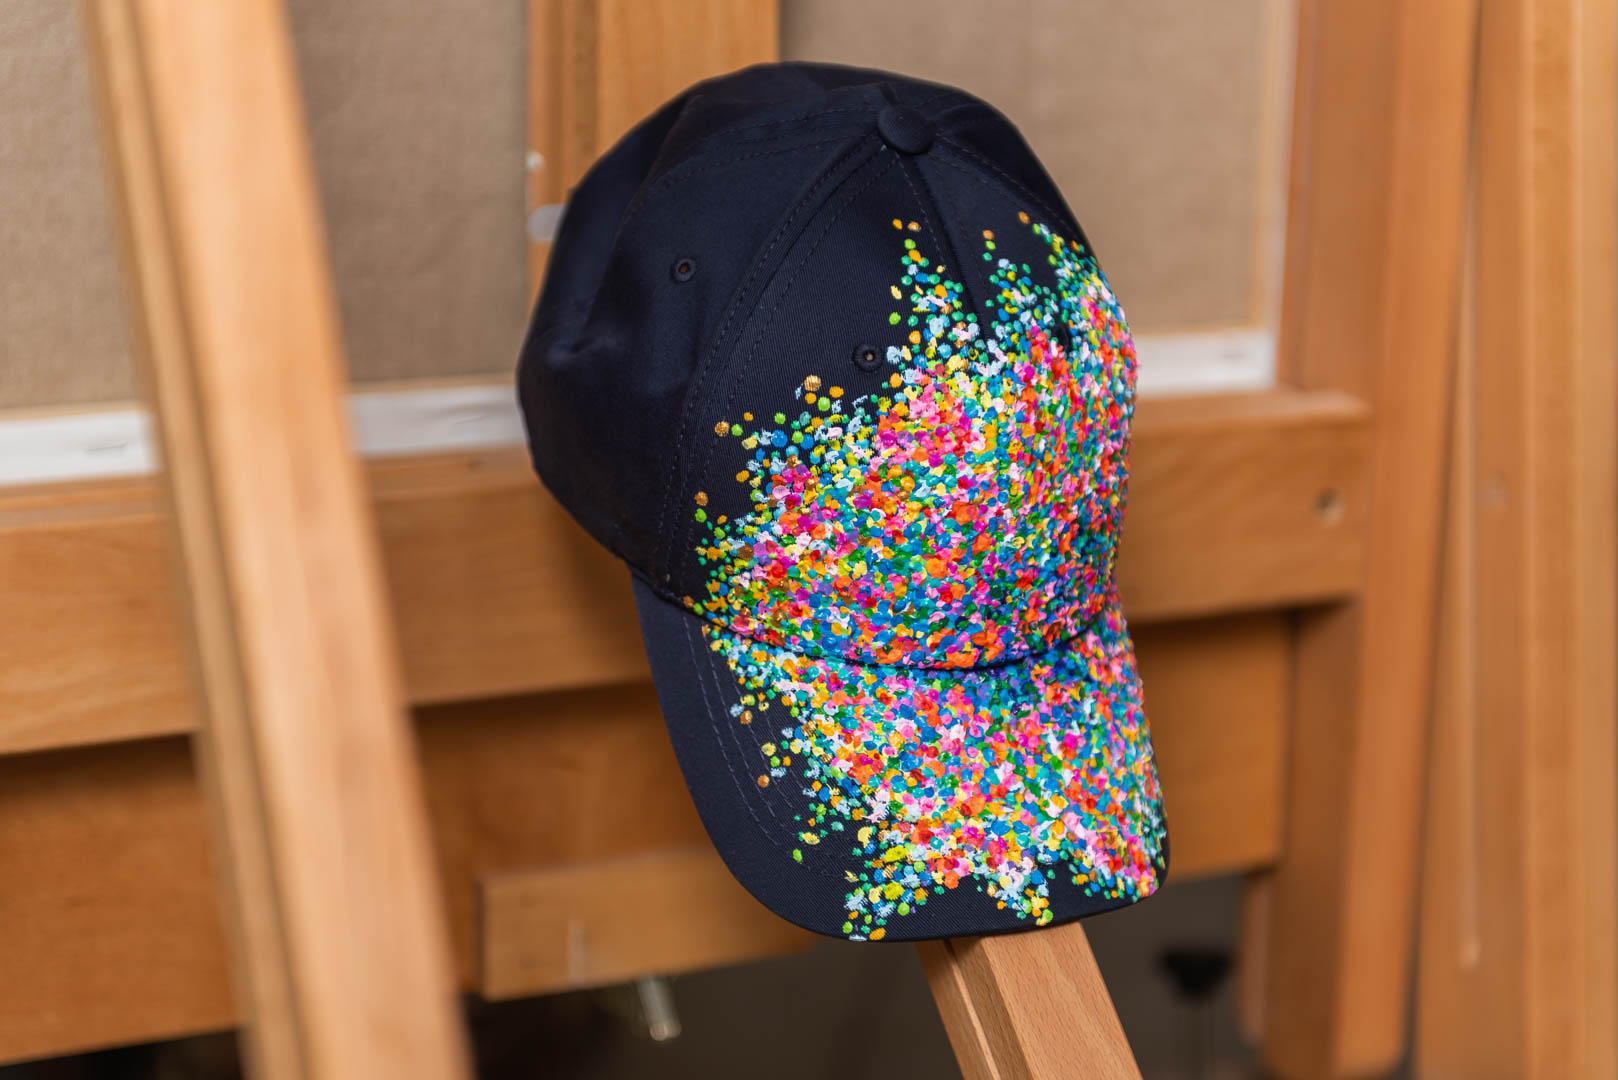 hand painted baseball hat, hand painted baseball cap, cap, hat, abstract, garden, impressionist painting, impressionism, indian artist, wearable art, dots, pointillism, khaosphilos, khaos philos, naina redhu, naina.co, painted by naina, art by naina, contemporary indian artist,